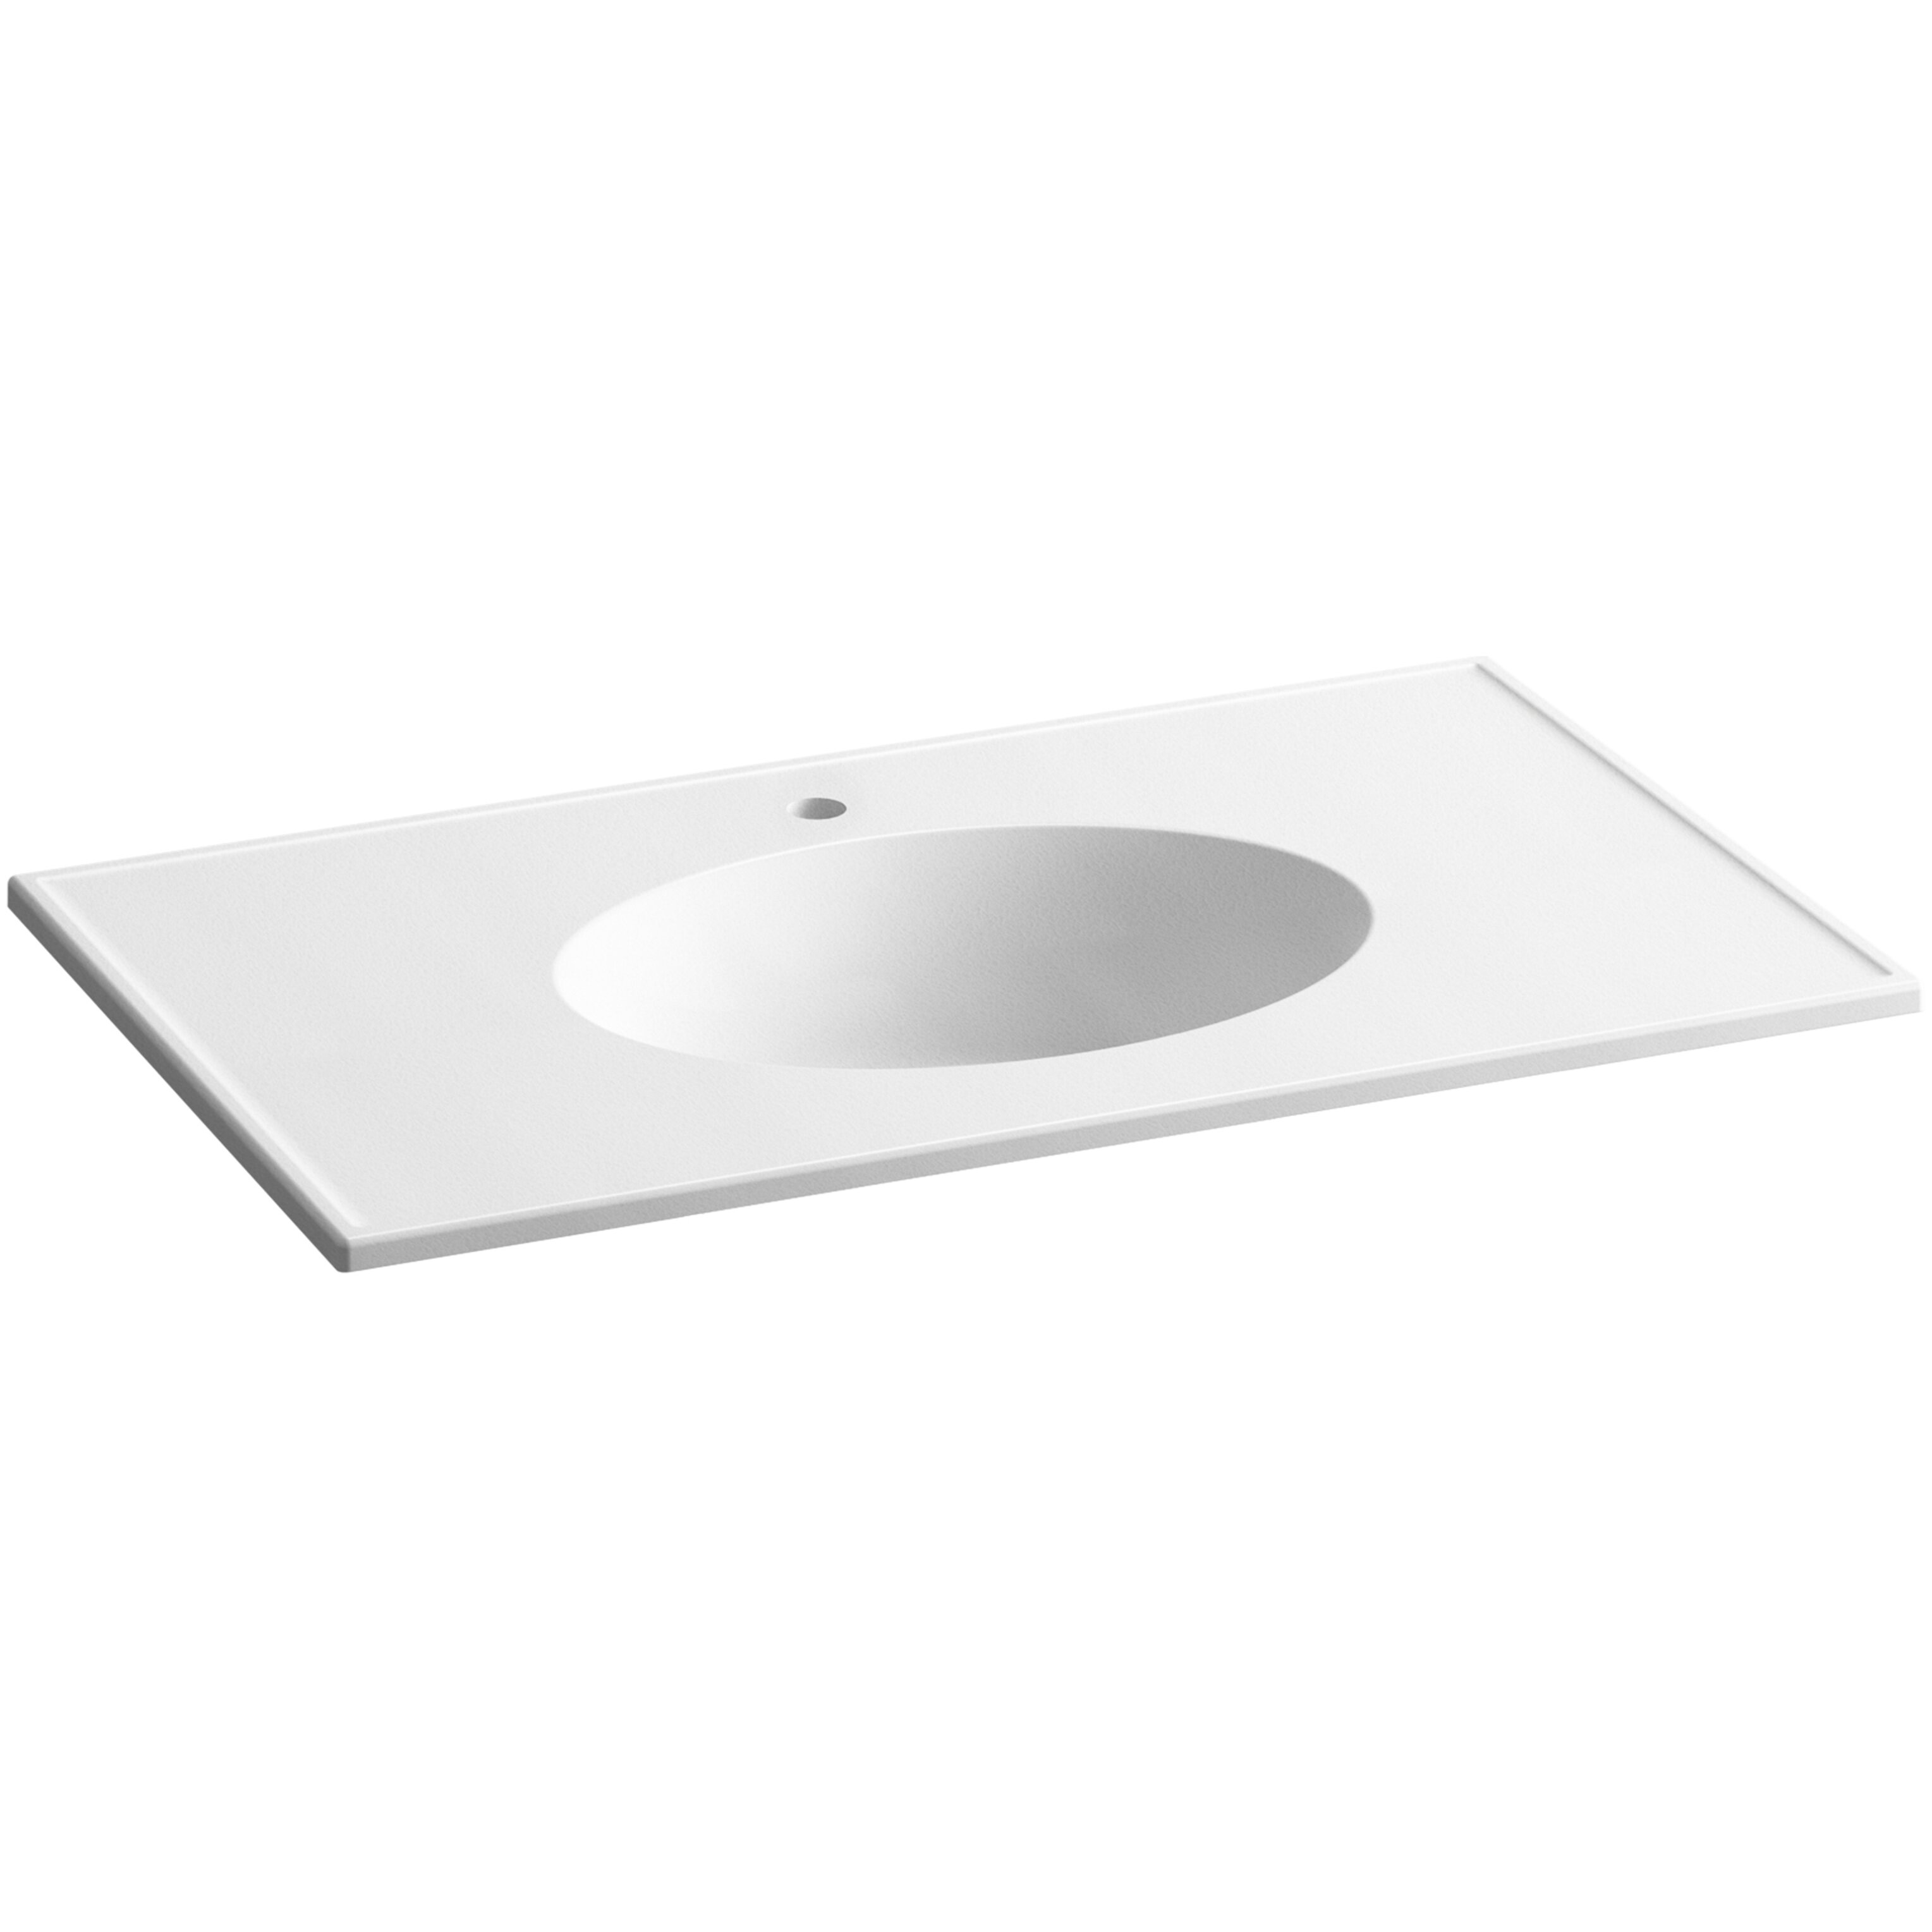 Oval Vanity Sink : ... Impressions 37